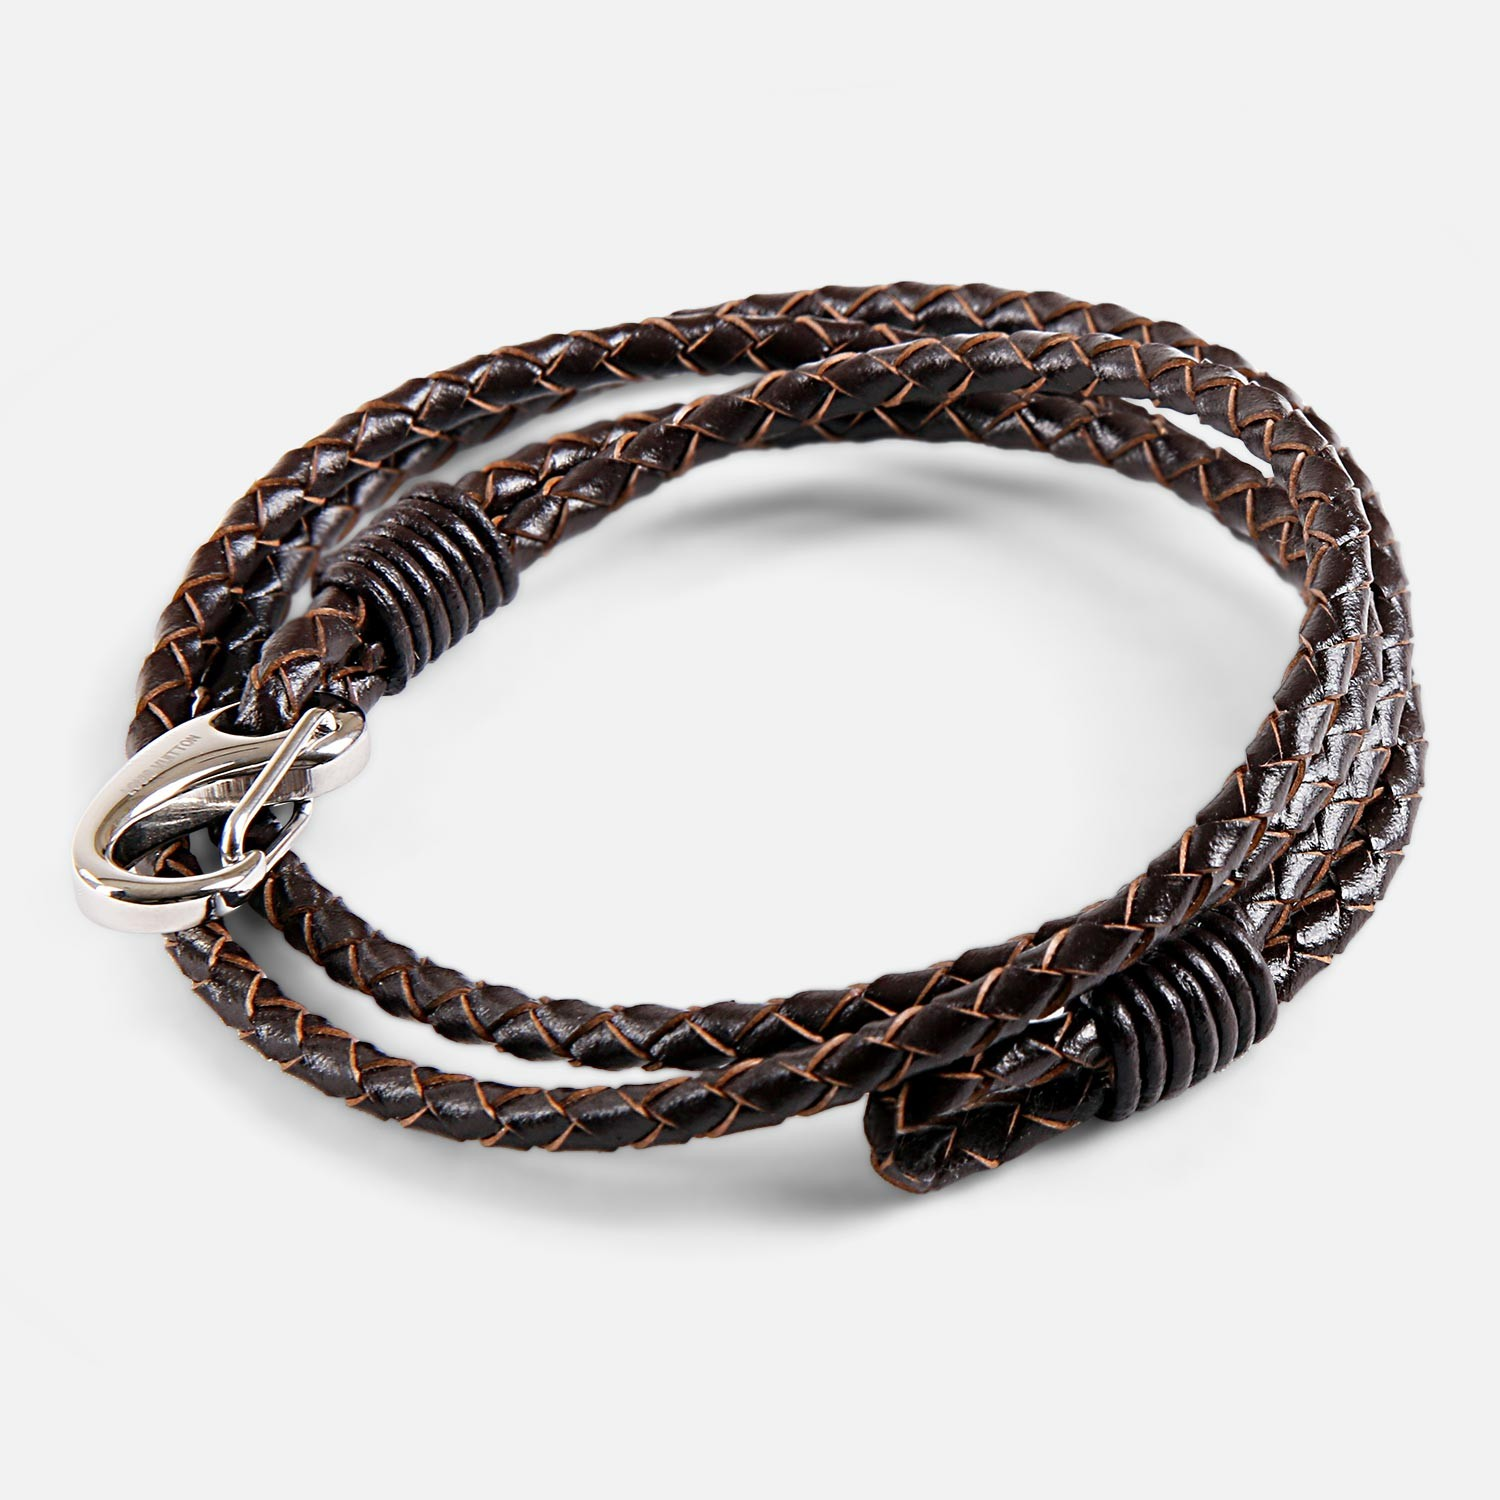 Mens Leather Double Wrap Wrist Band By Louis Vuitton 03